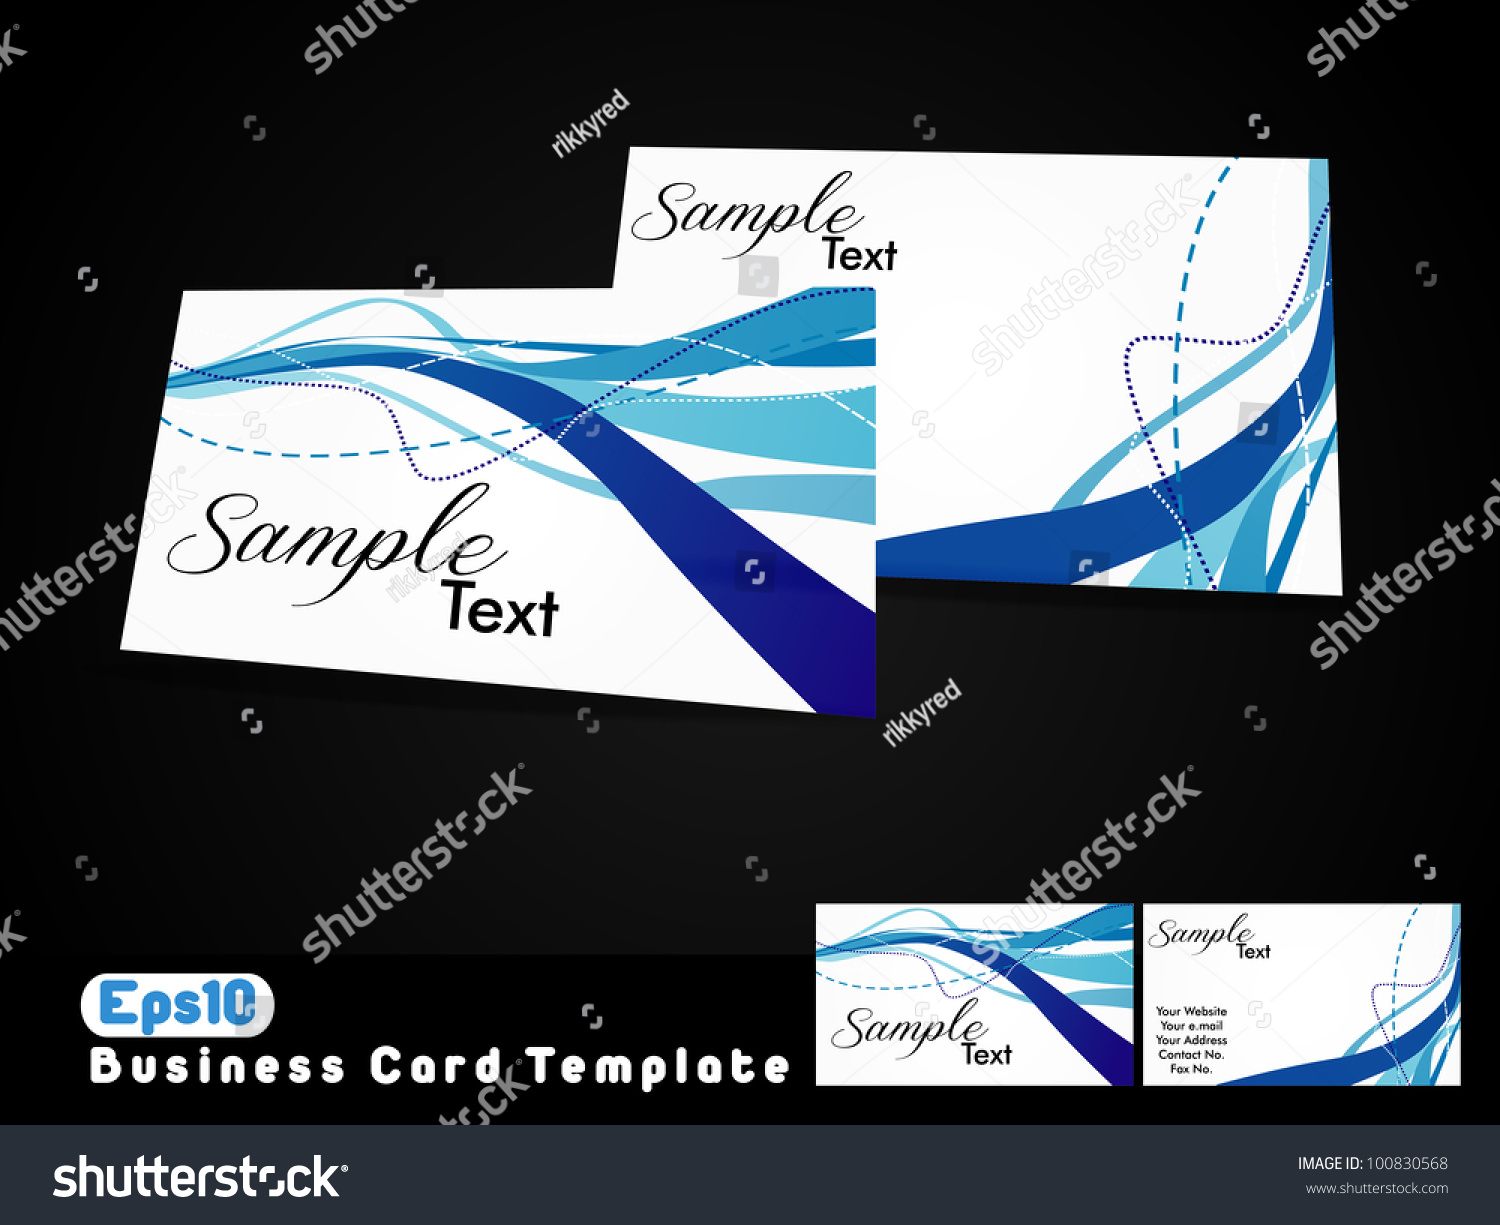 Business Card Template Eps 10 Stock Vector Royalty Free 100830568